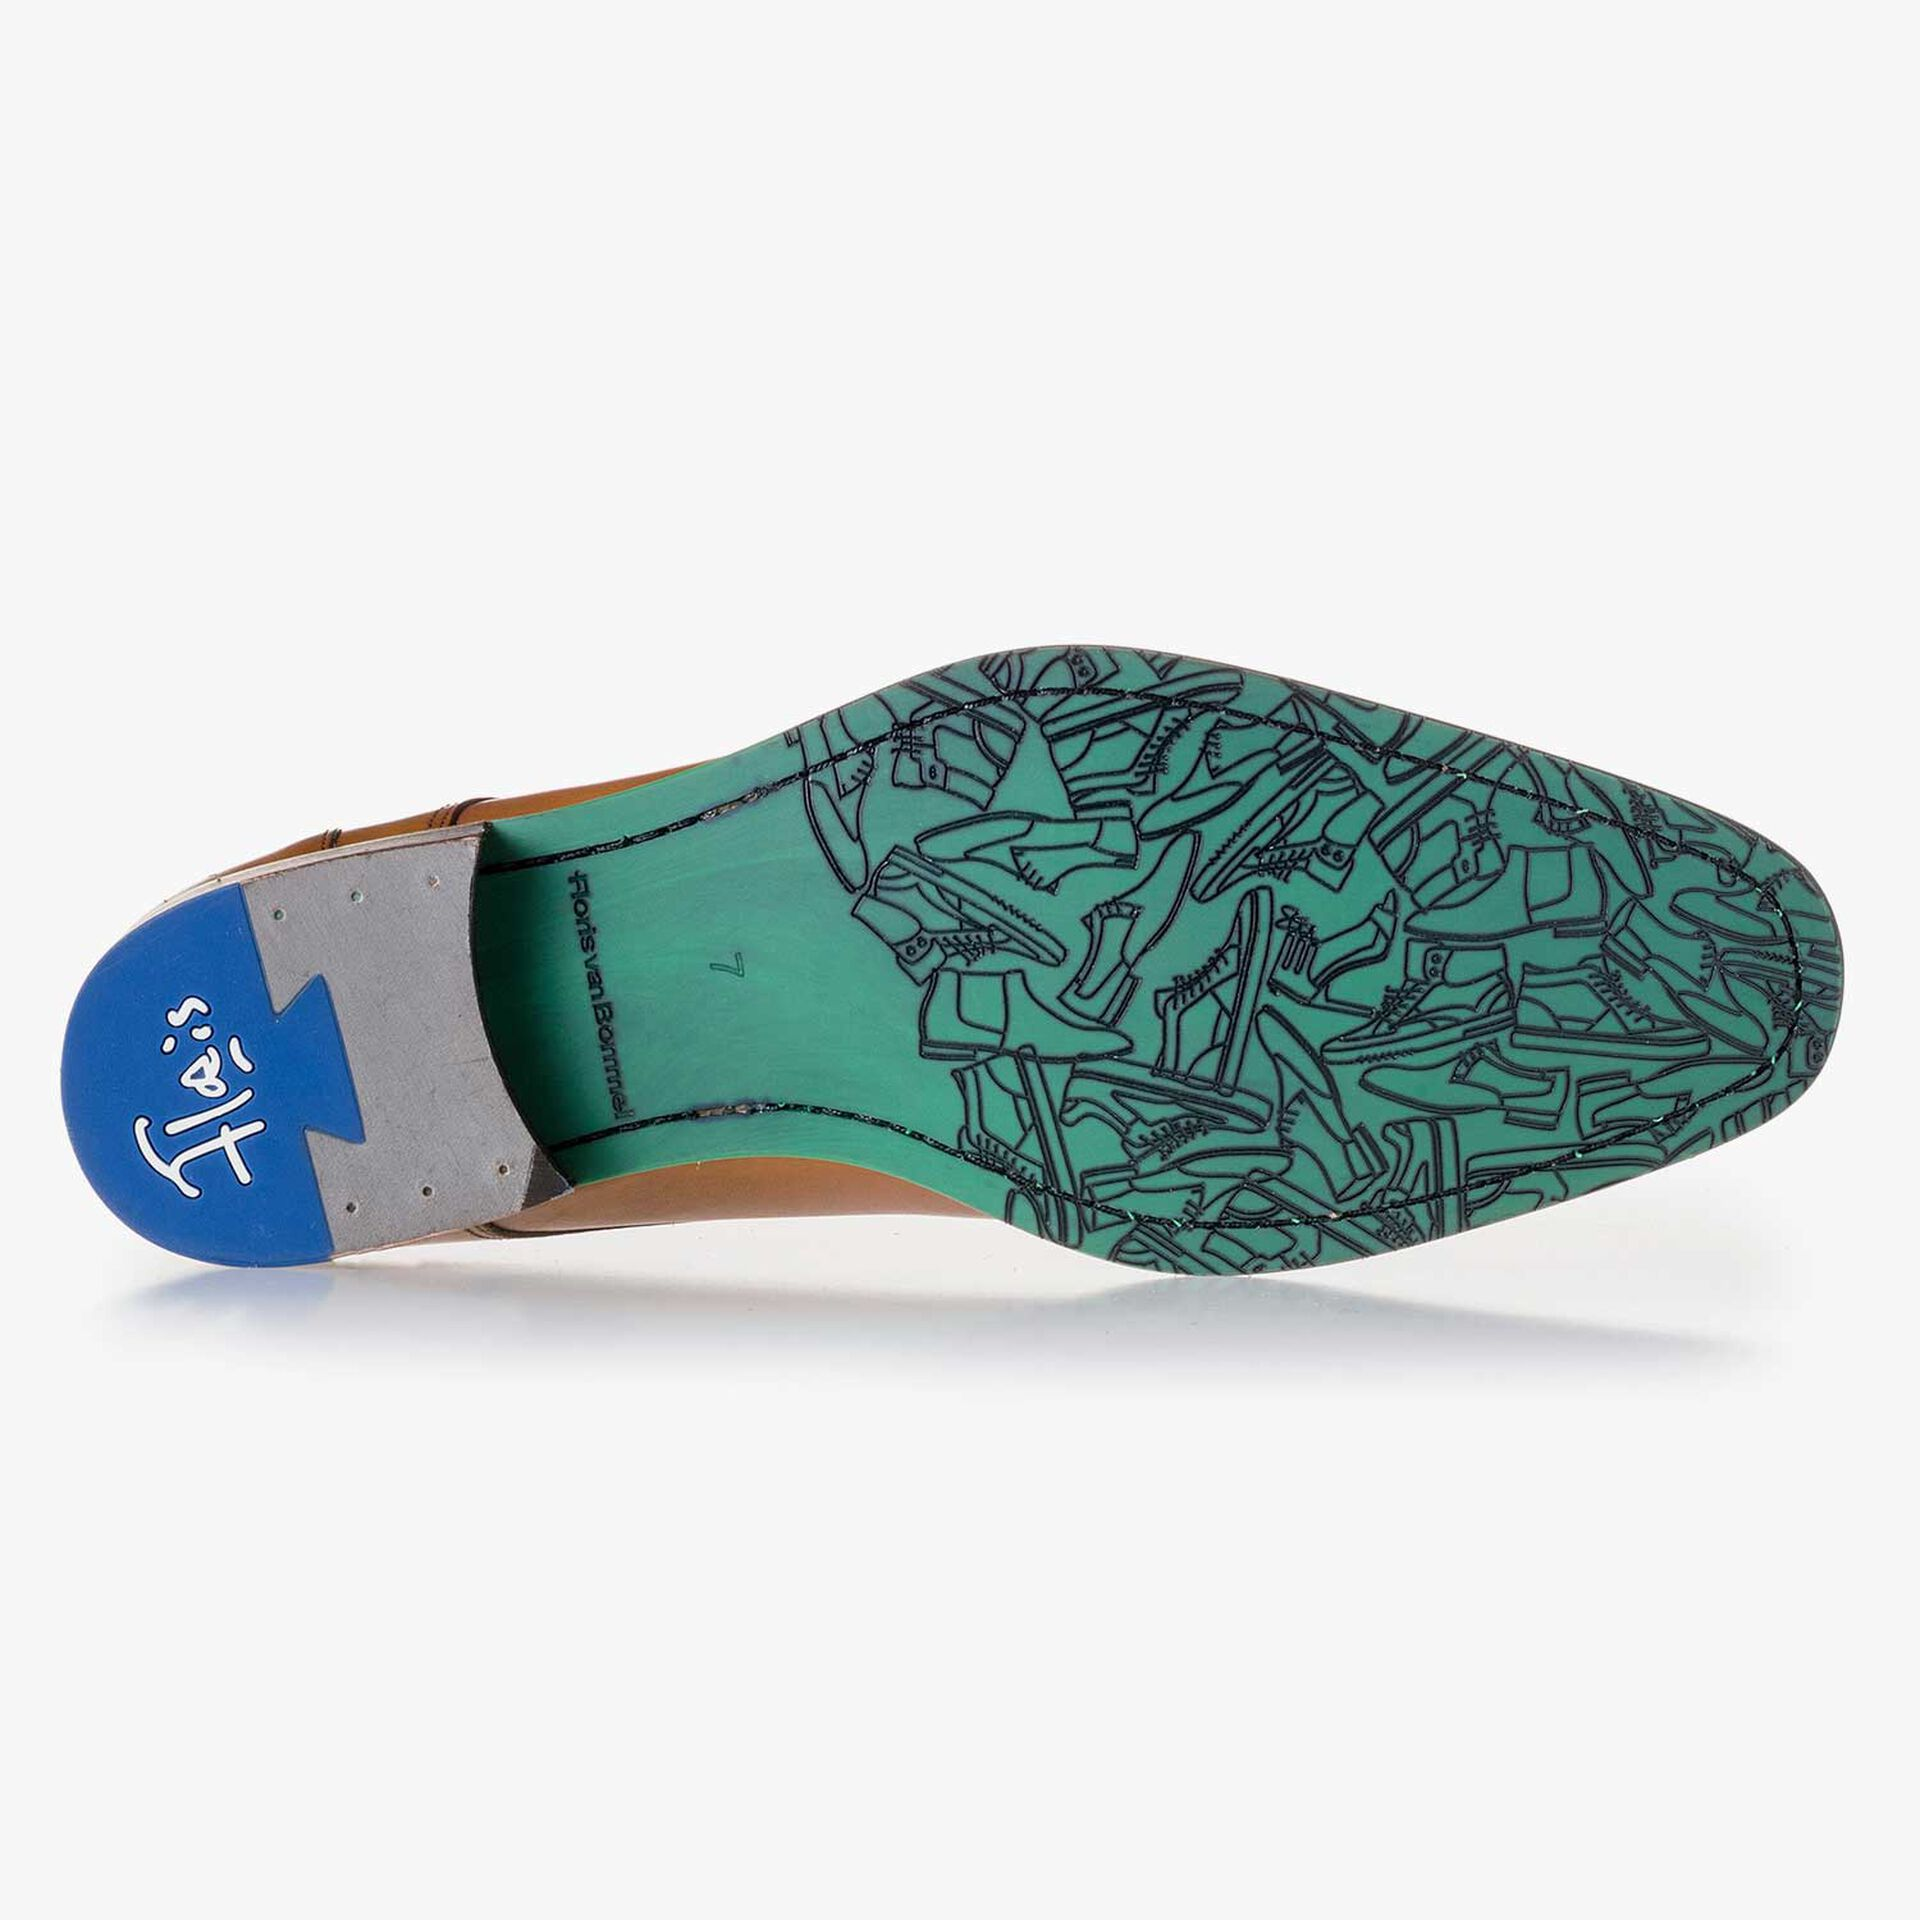 Cognac-coloured, laser-printed leather lace shoe